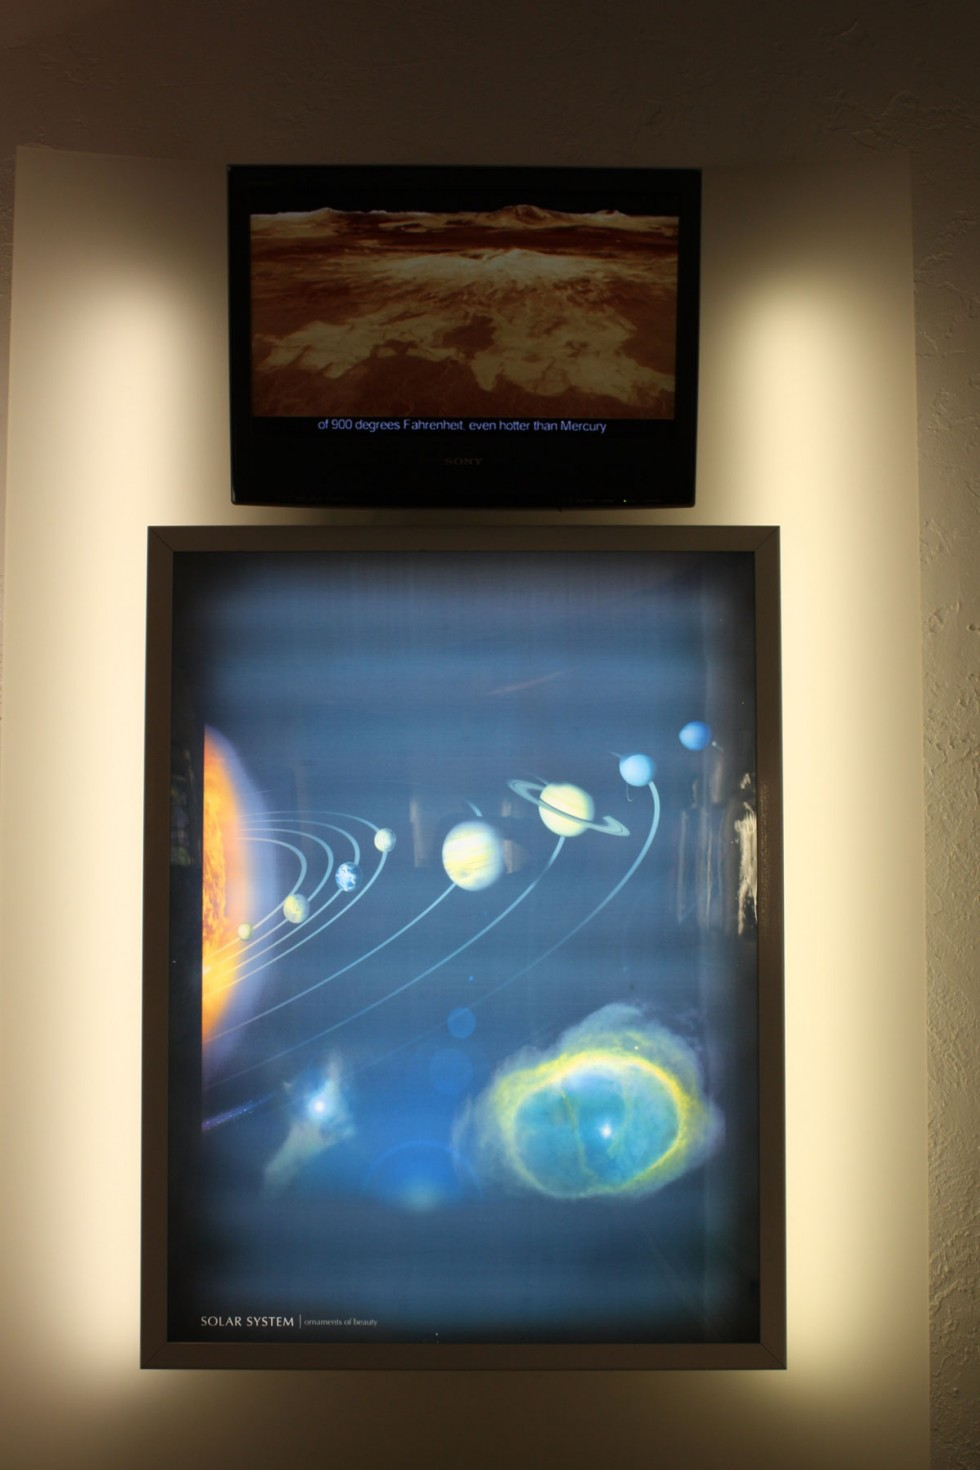 Just past the Six Days Theater, where visitors can take in a multimedia presentation on the young-Earth Creationist interpretation of the first two chapters of Genesis, lies the Wonders Room. Here, we behold the wonder of the Solar System (which is pretty darn wondrous).